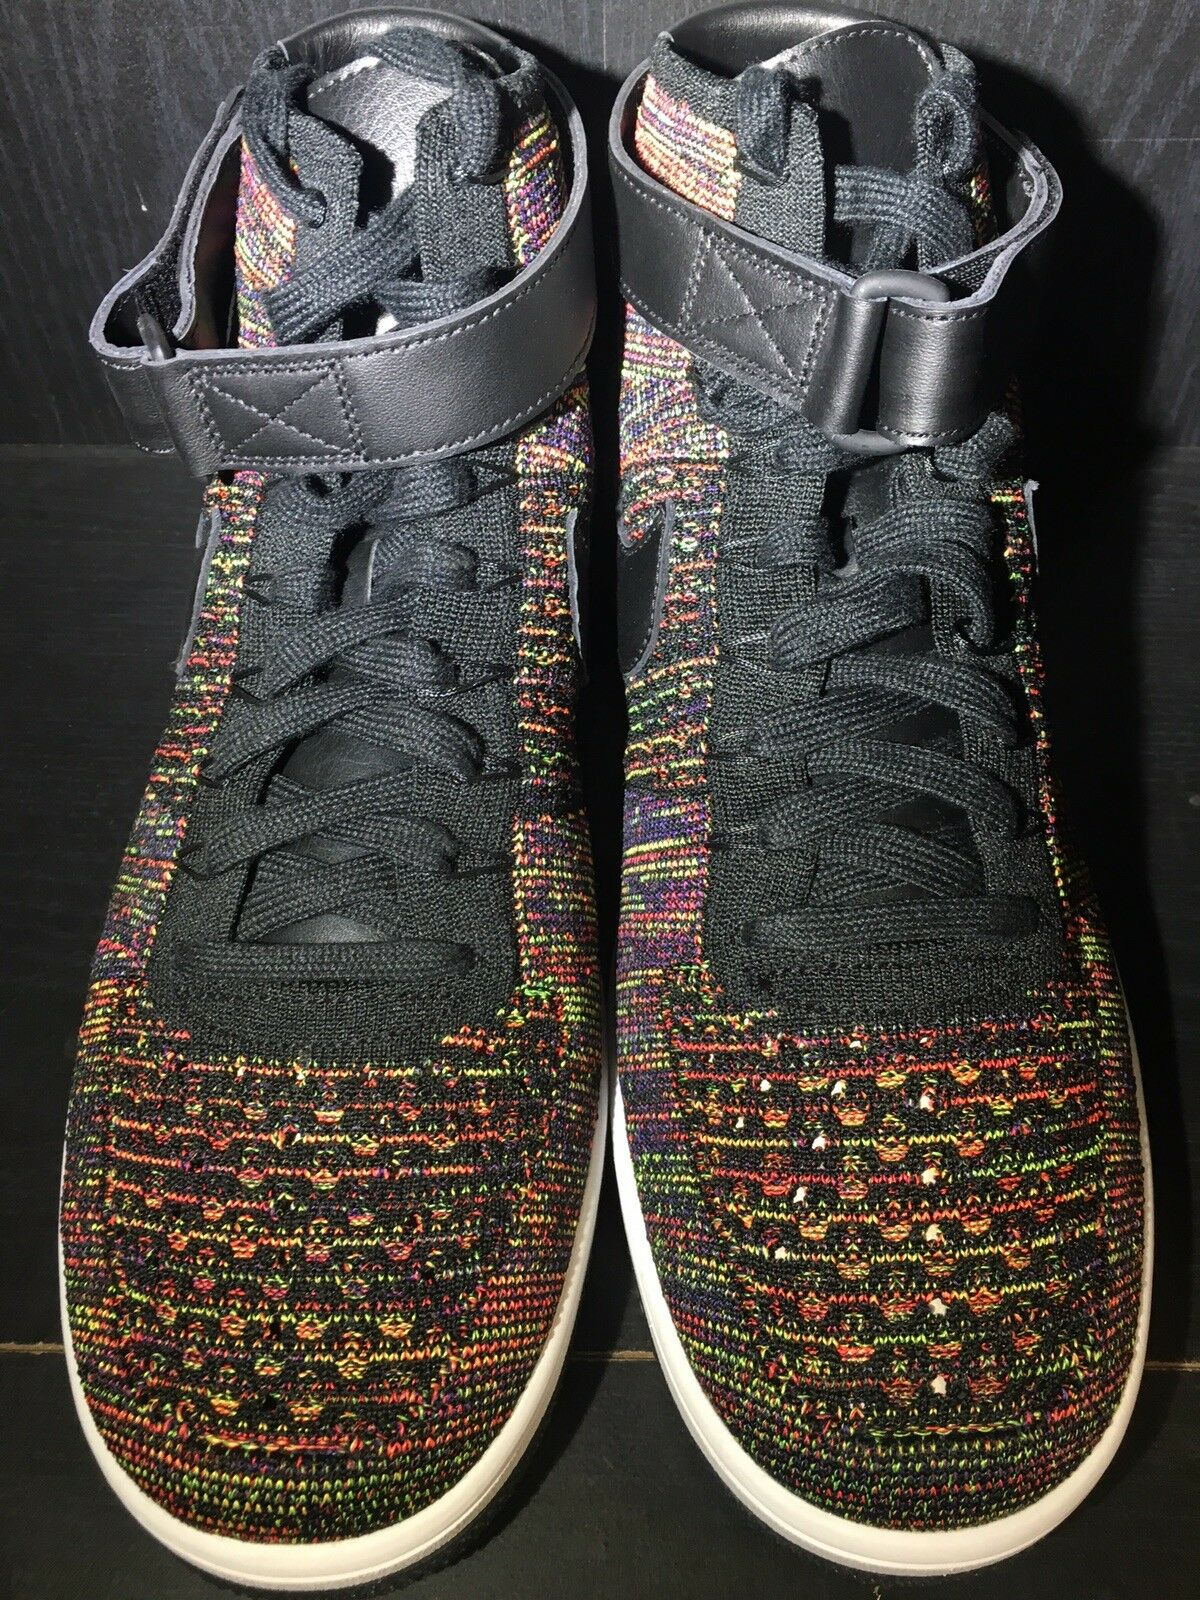 Brand New Nike Air Force 1 Ultra Flyknit Multicolor Size 11